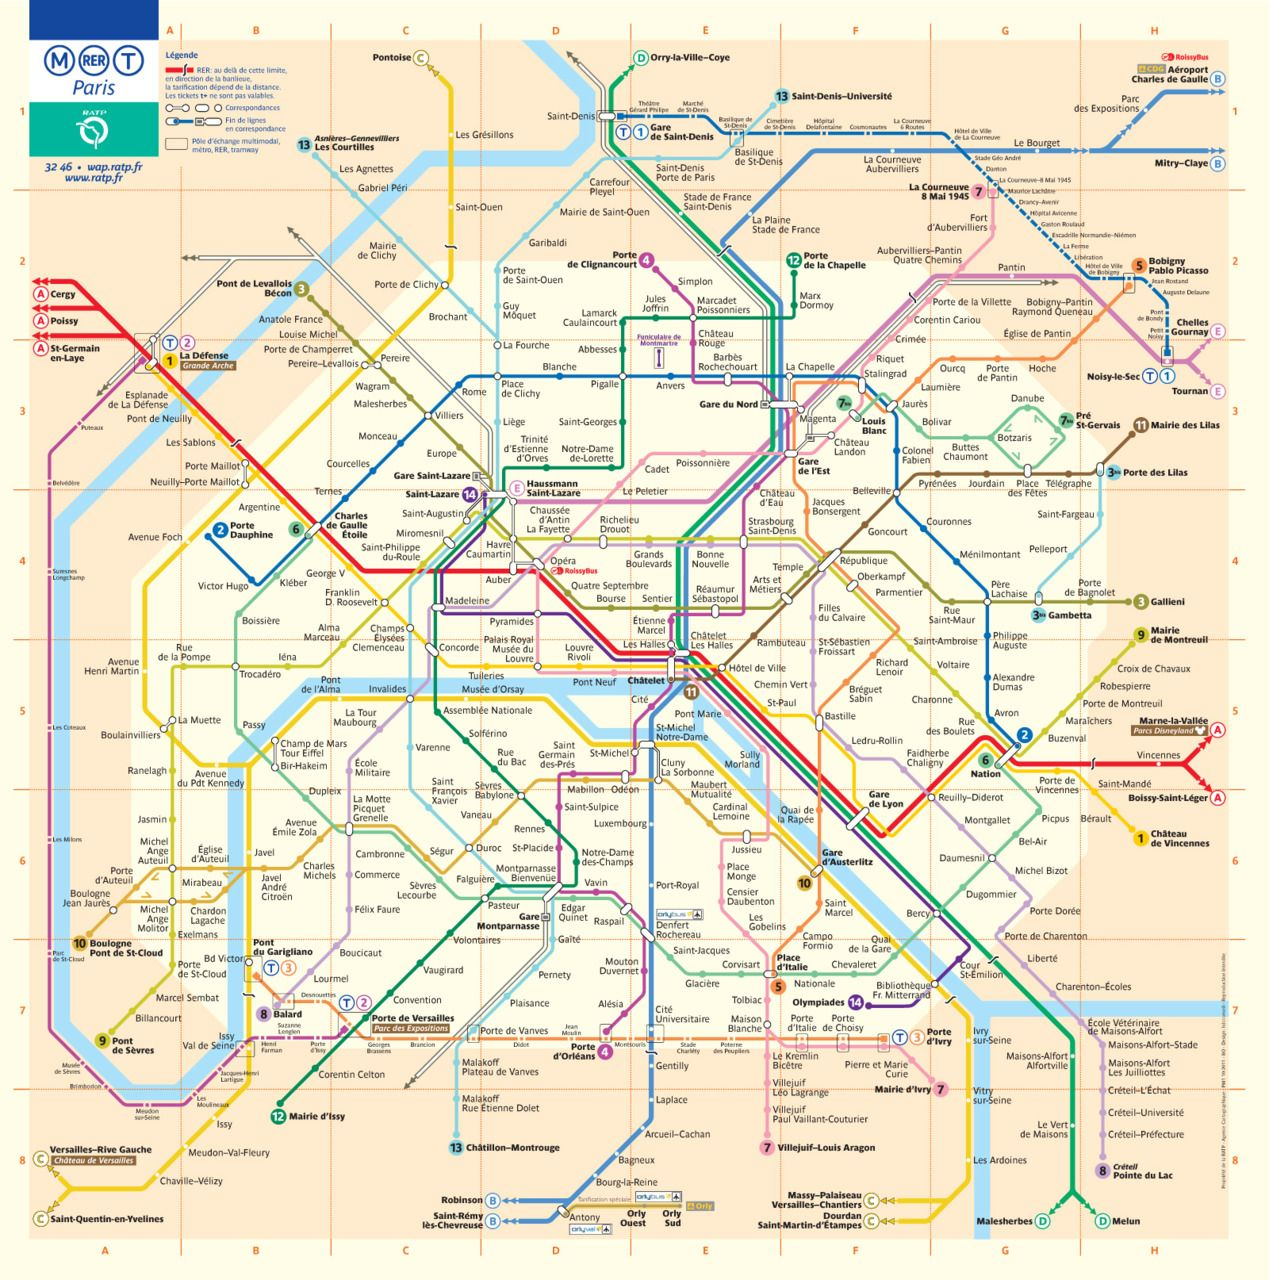 Official Map: Paris Metro/RER/Tram Map If you visit Paris, you